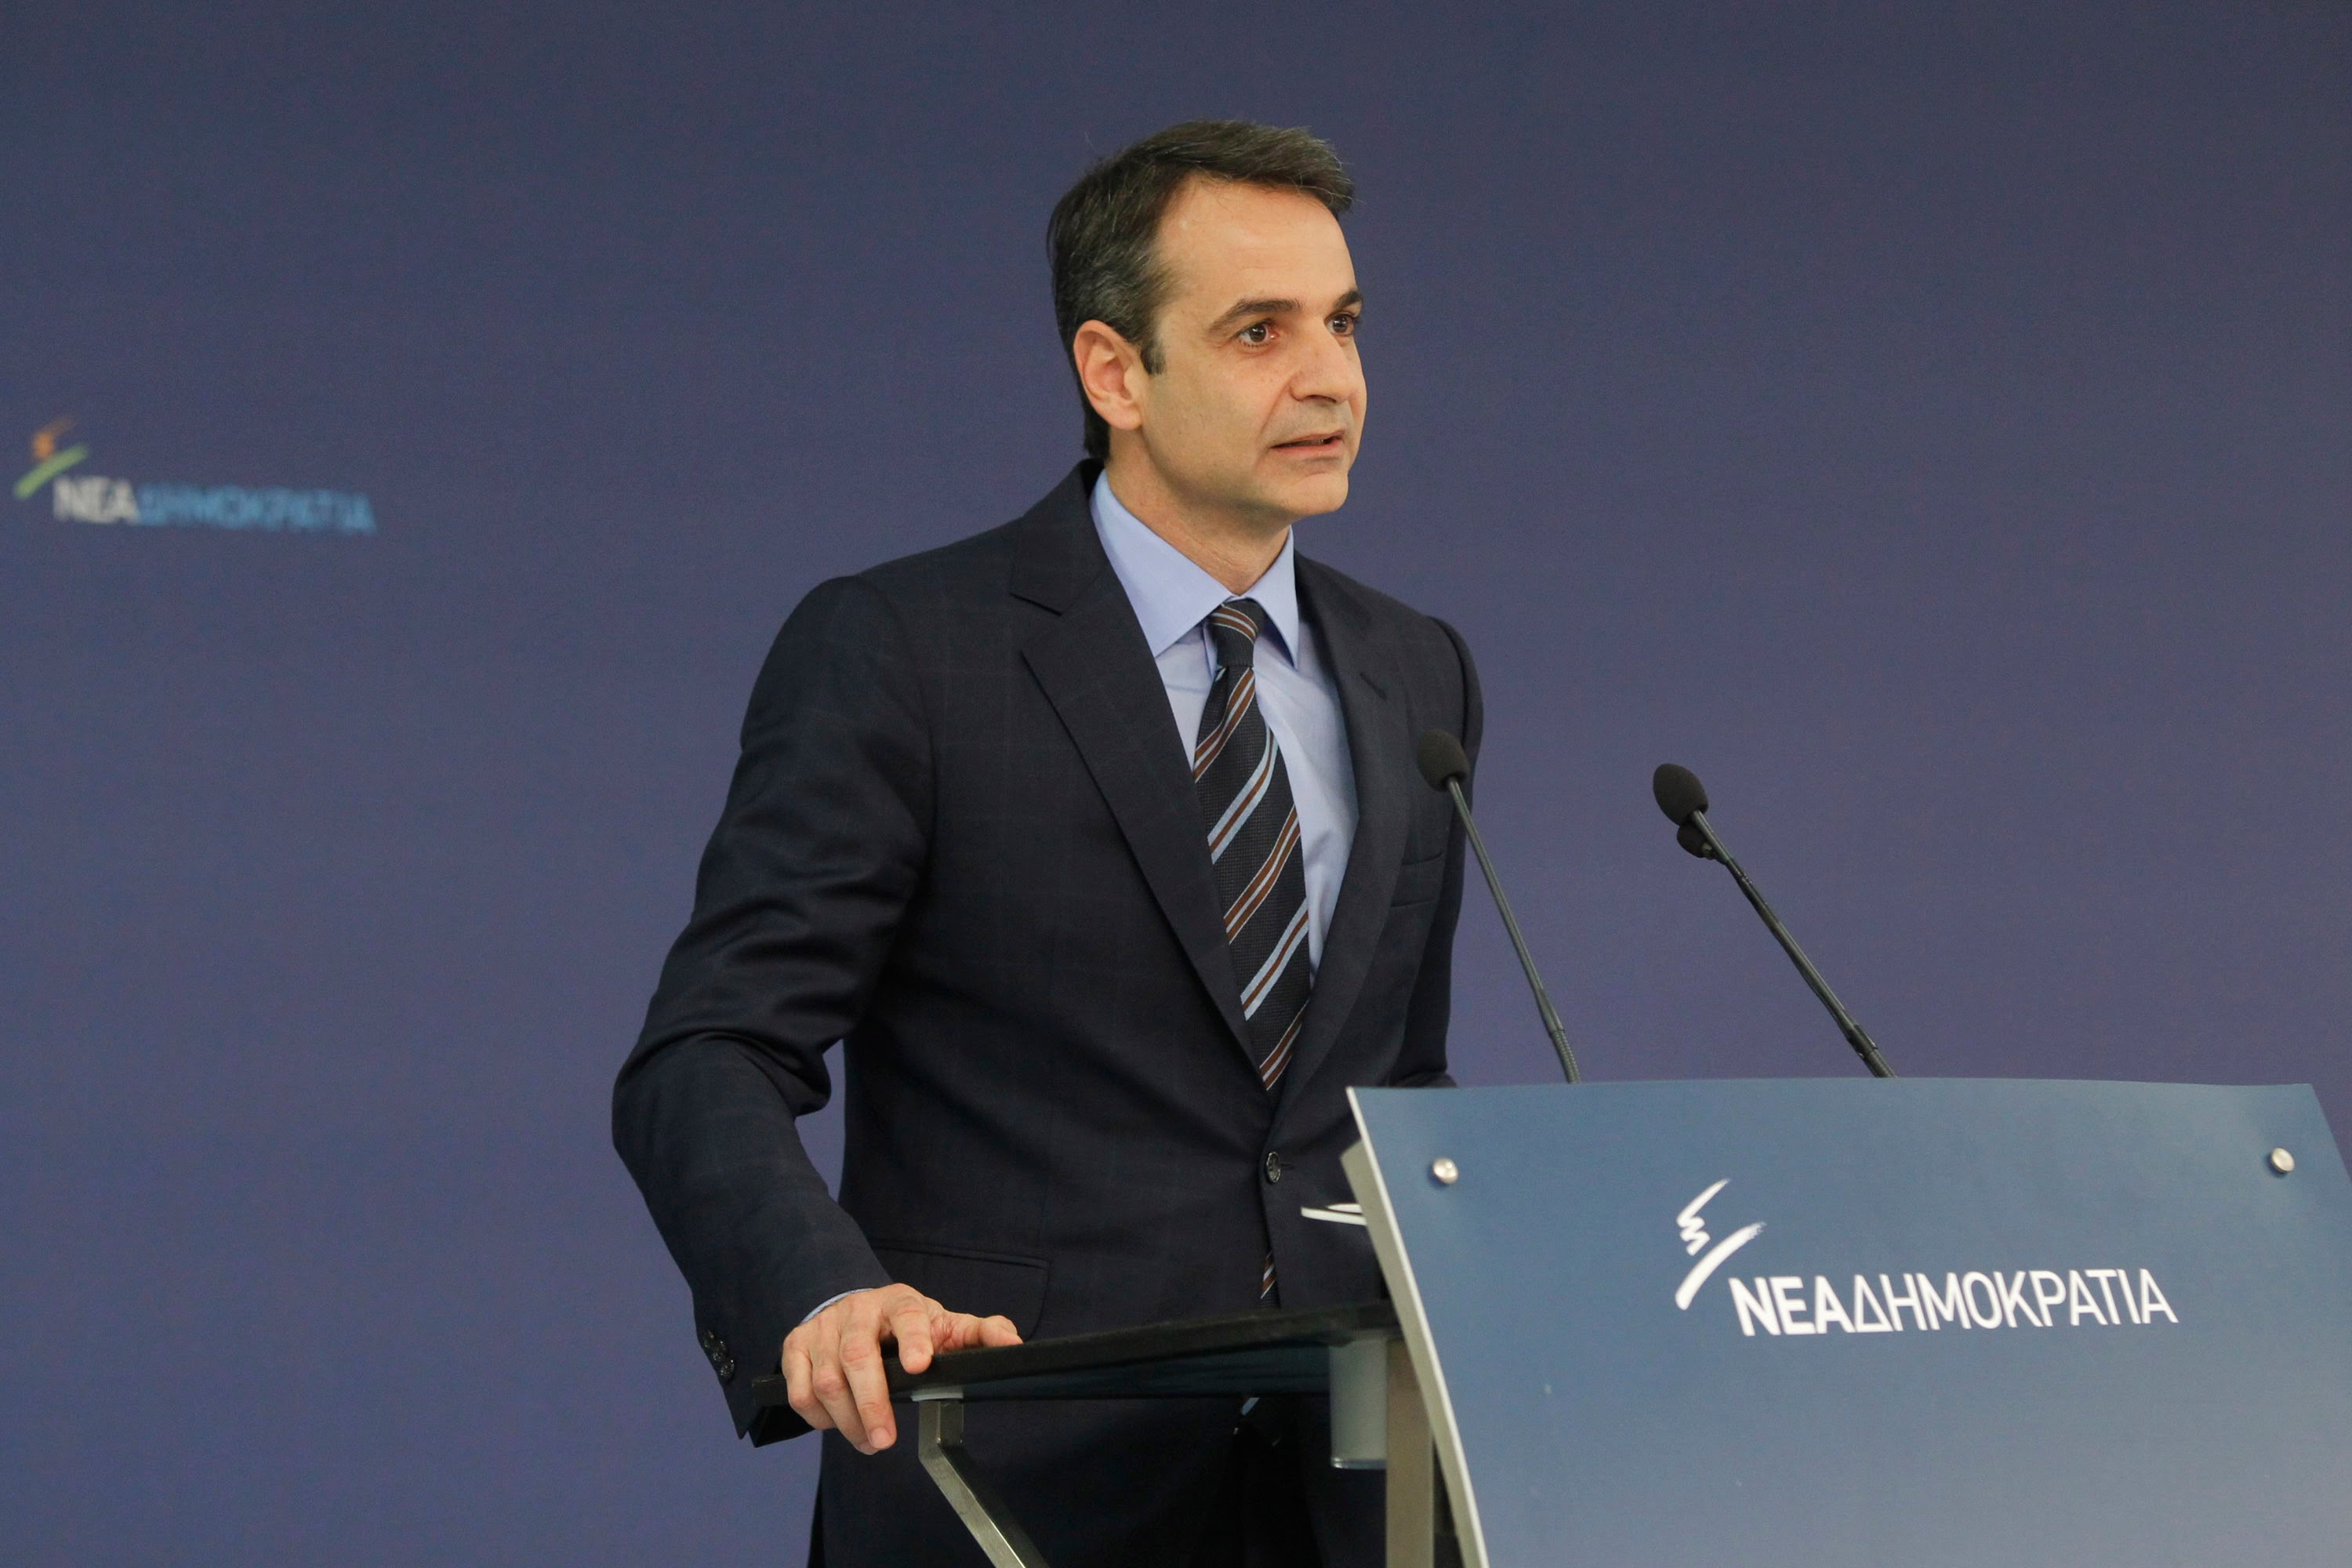 Mitsotakis: The main objective of ND is social cohesion